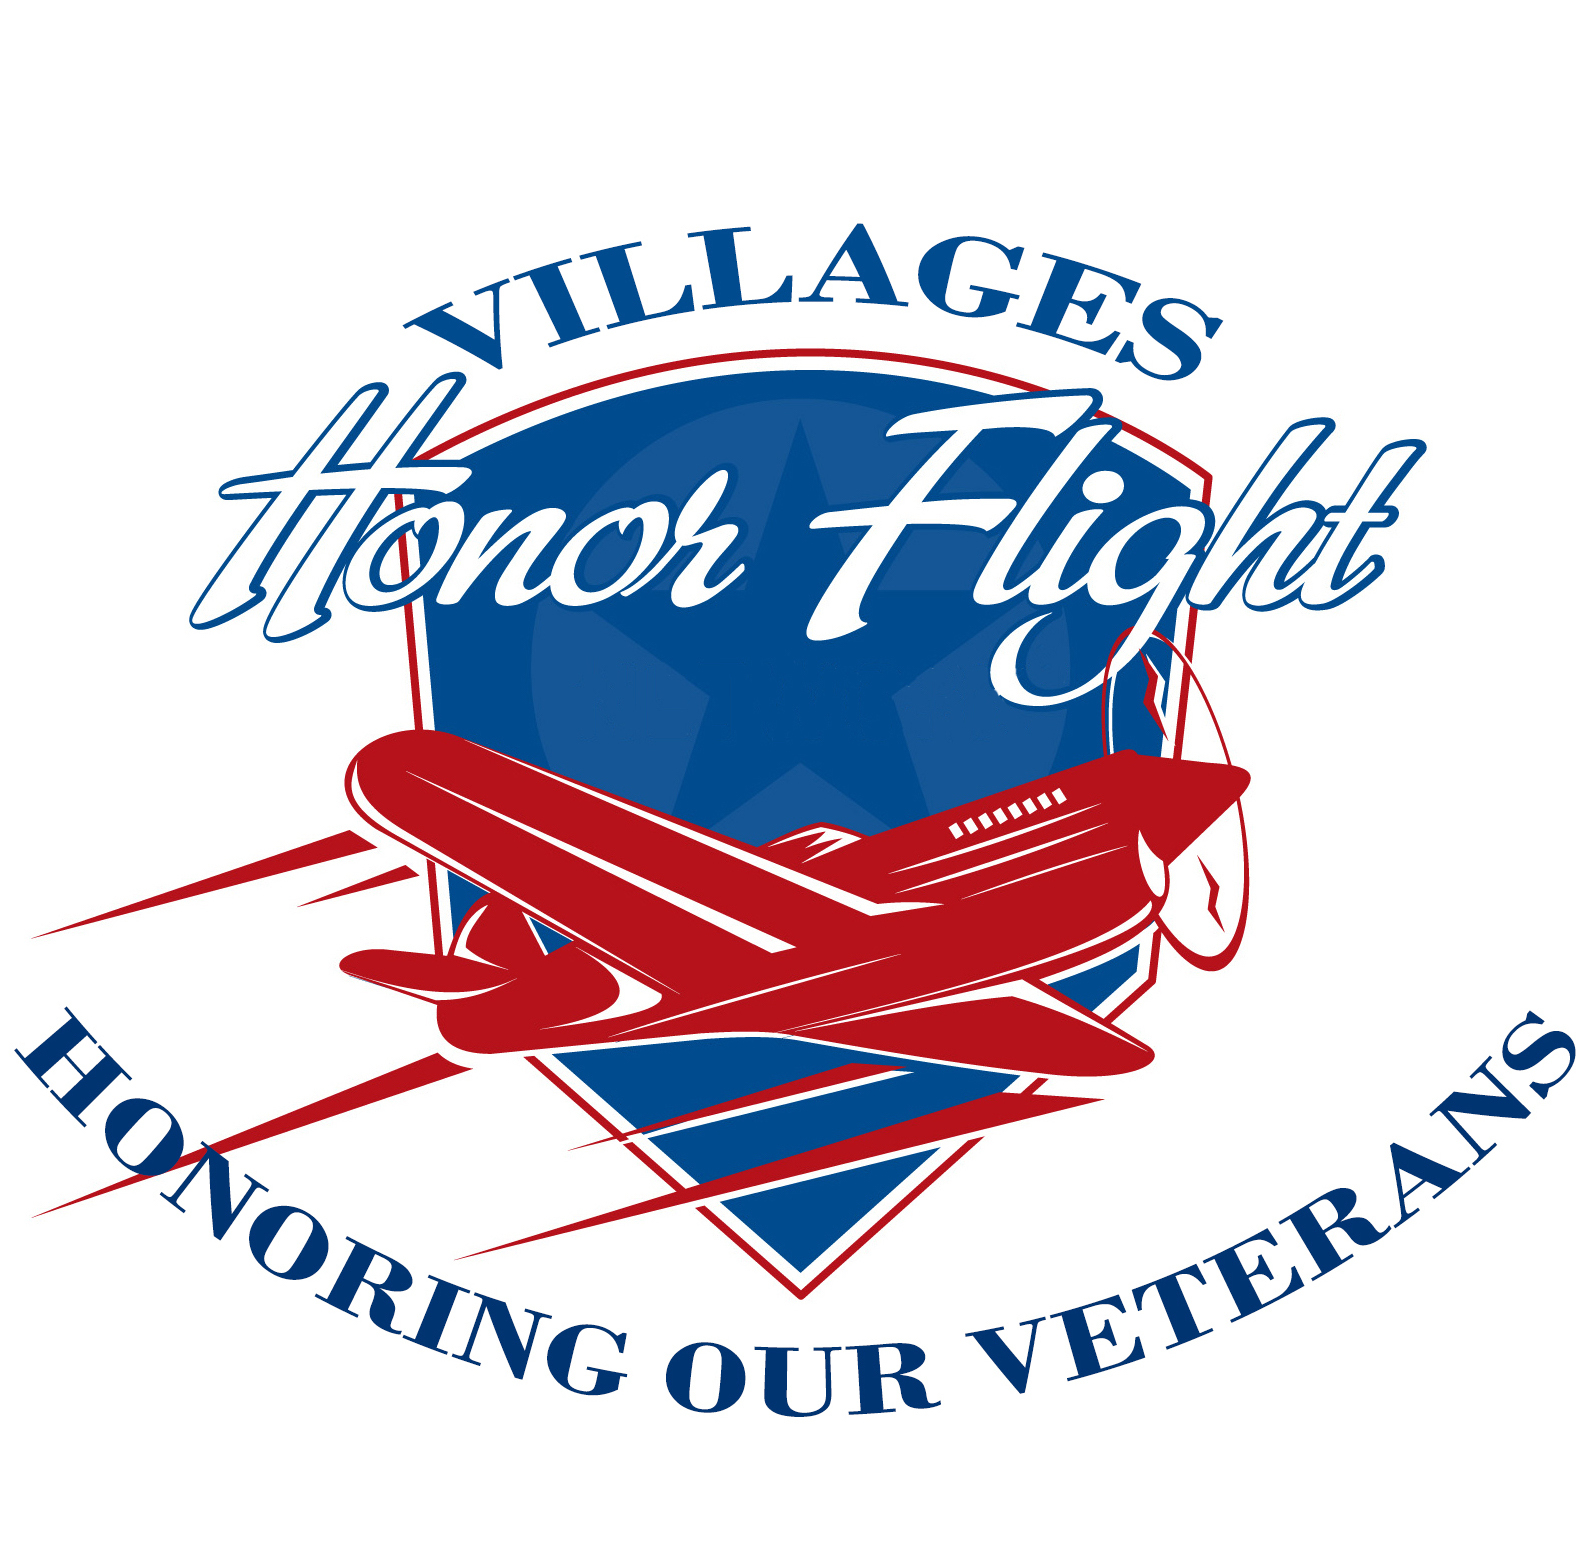 HONOR FLIGHT THE VILLAGES